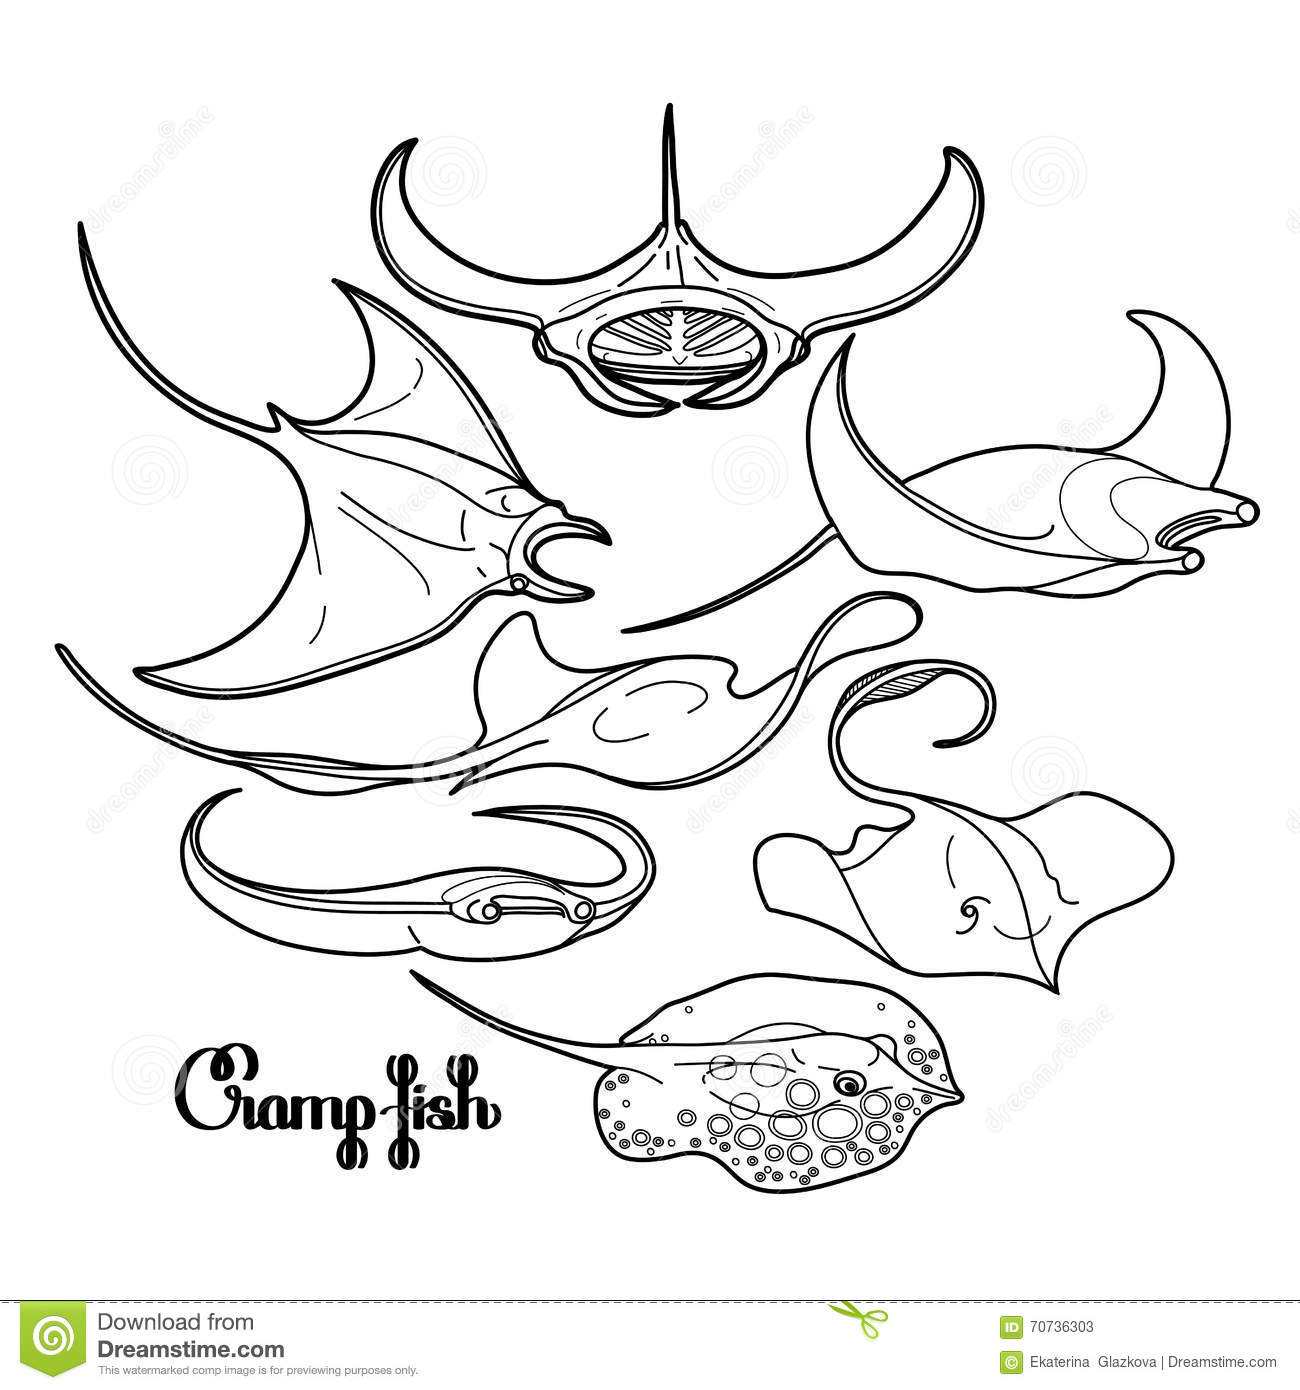 graphic cramp fish collection stock vector